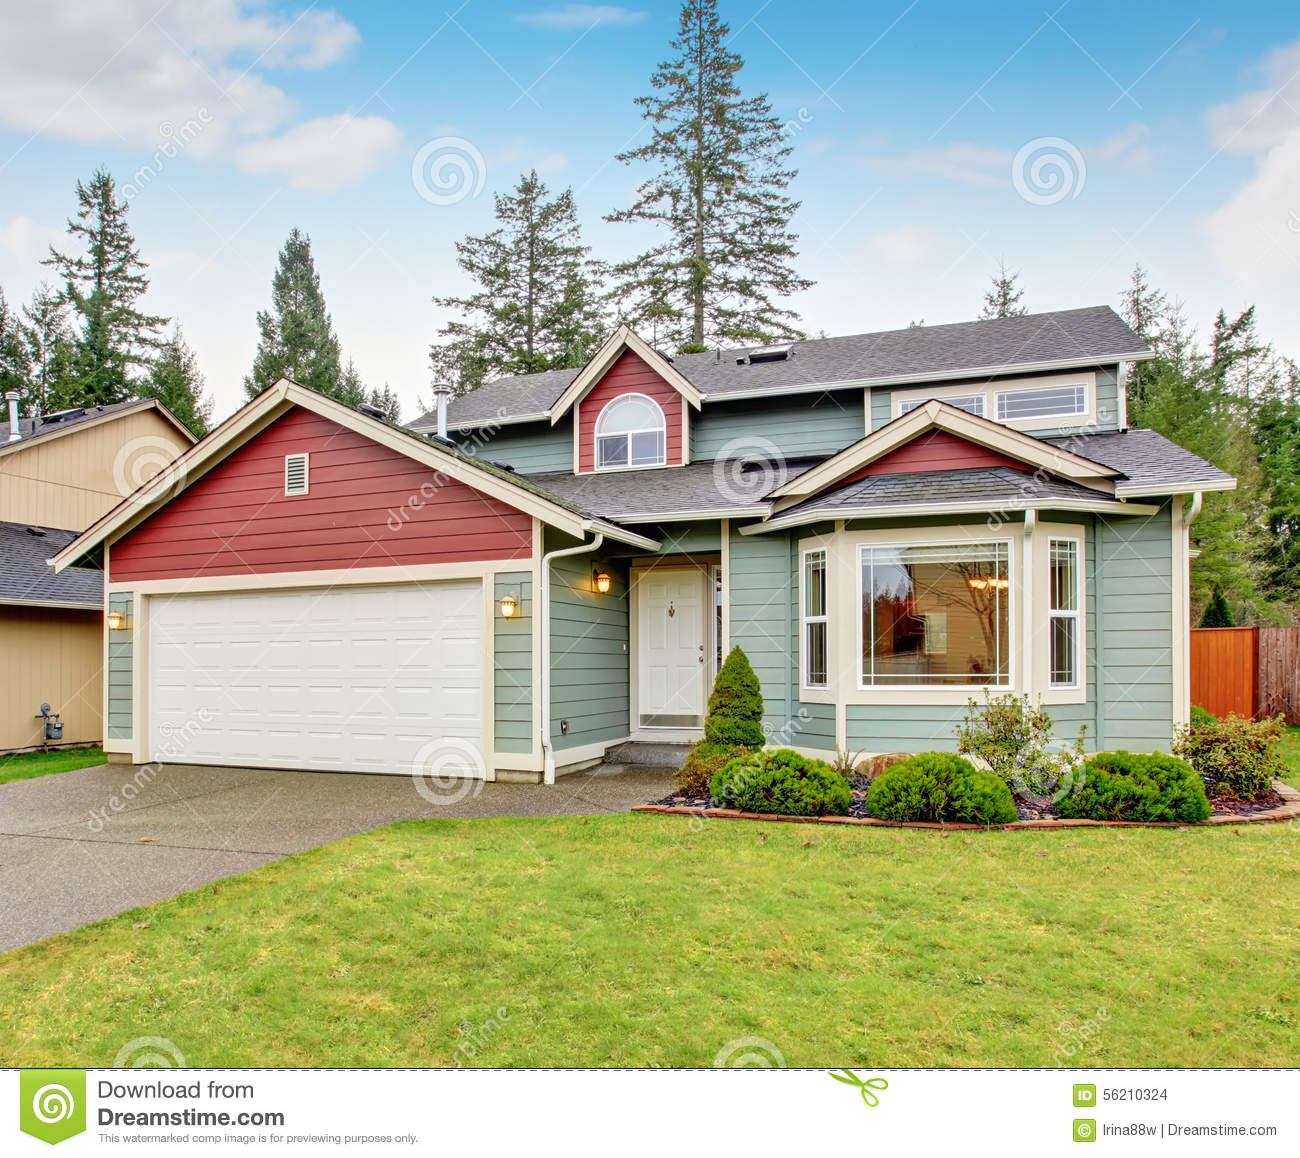 Classic House With Garage And Driveway. Stock Photo